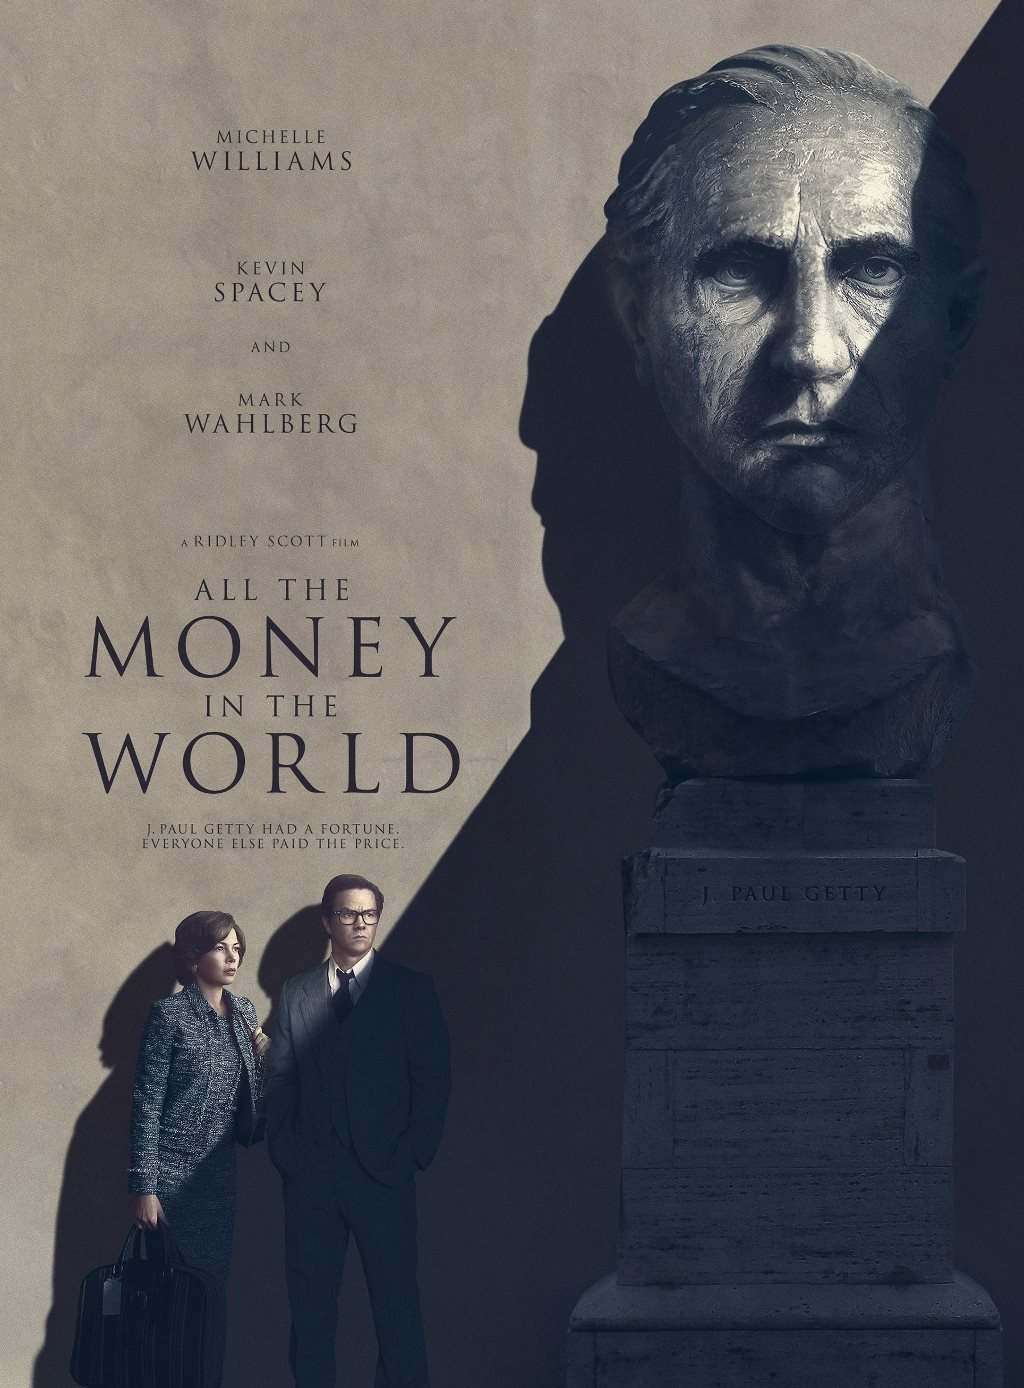 Visi pasaulio pinigai (All the Money in the World)